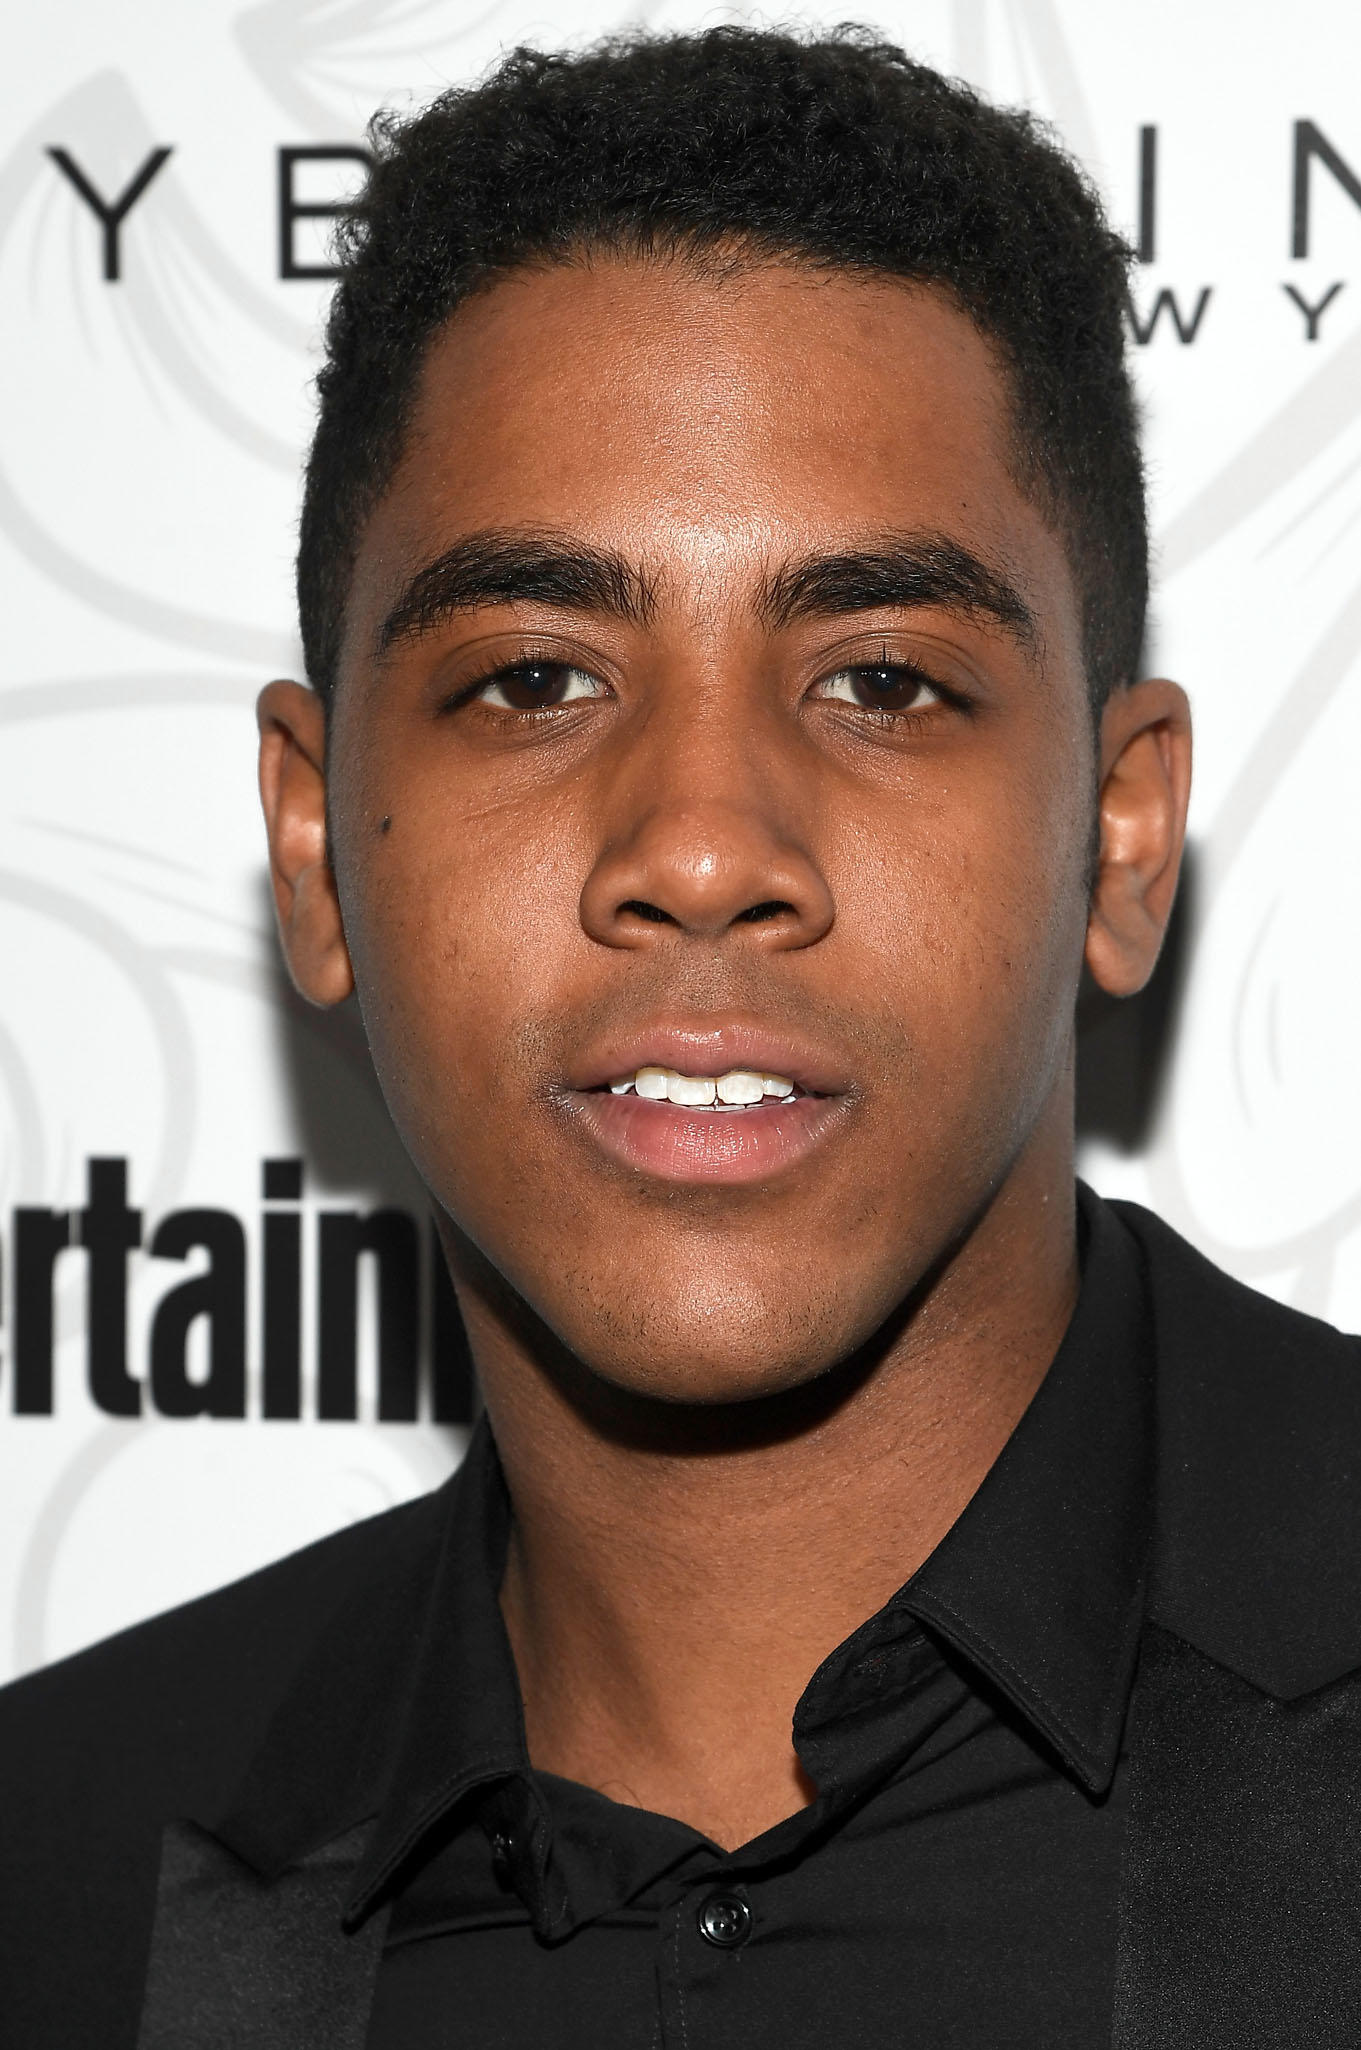 Jharrel Jerome at the Entertainment Weekly Celebration of SAG Award Nominees in Los Angeles.